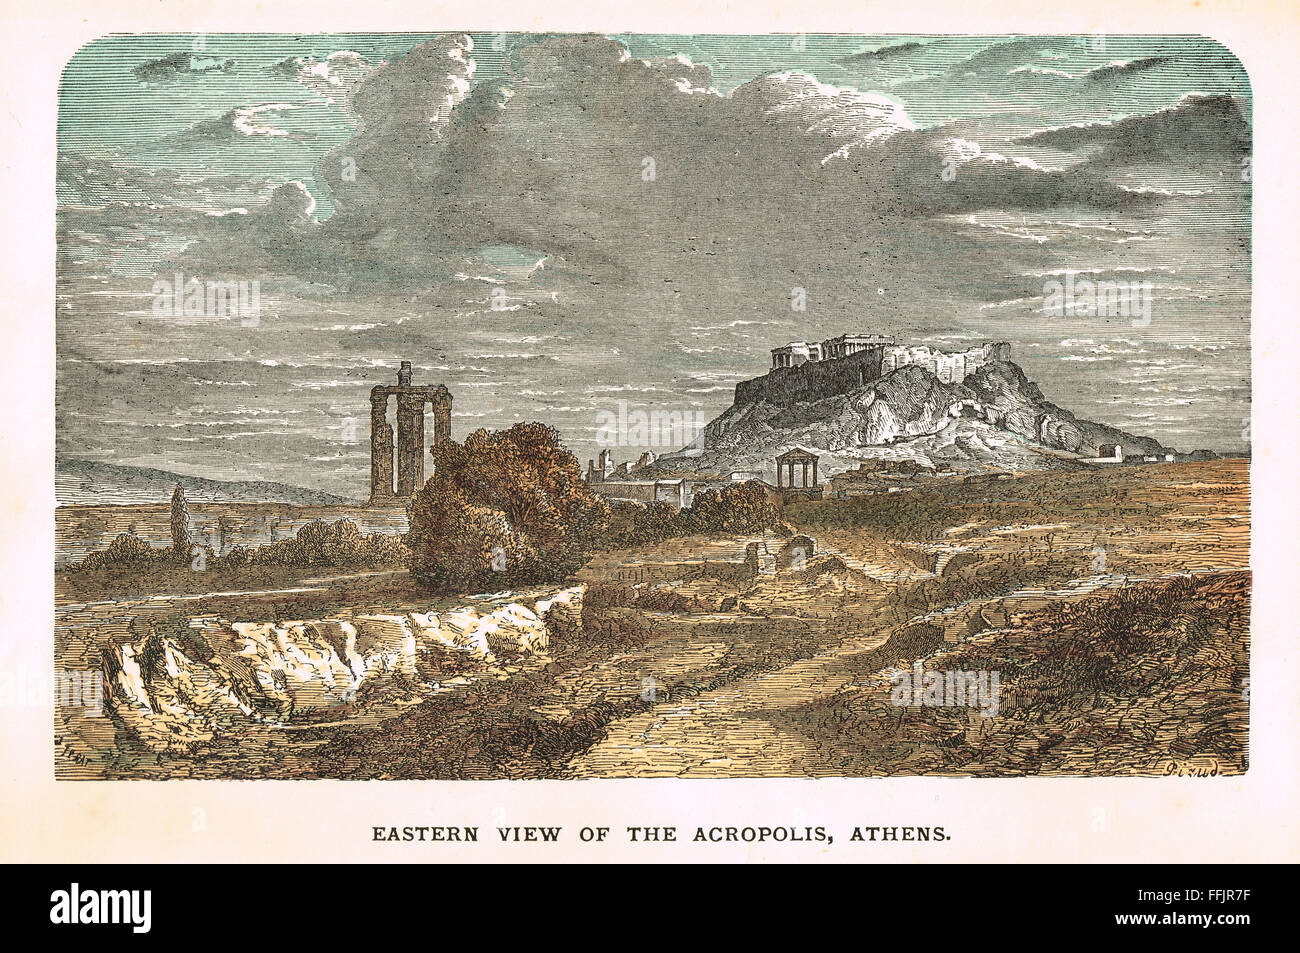 Eastern view of the Acropolis Circa 1896 - Stock Image